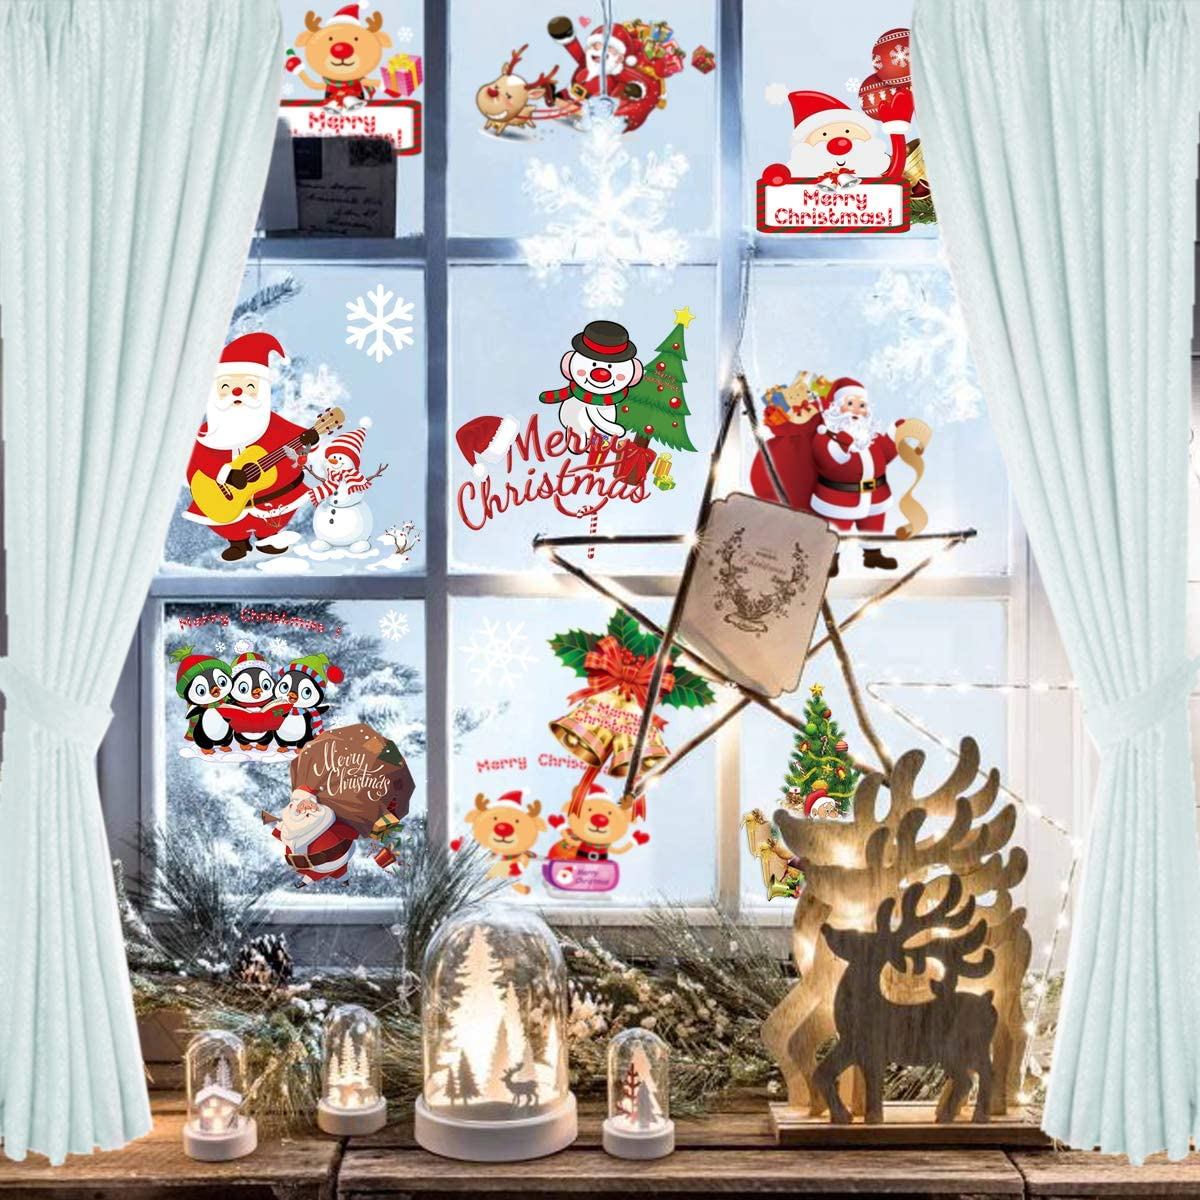 Ksndurn Christmas Window Clings, Window Decorations - Santa Window Clings/Reindeer Snowman Xmas Decals for Christmas, Party, Decoration.